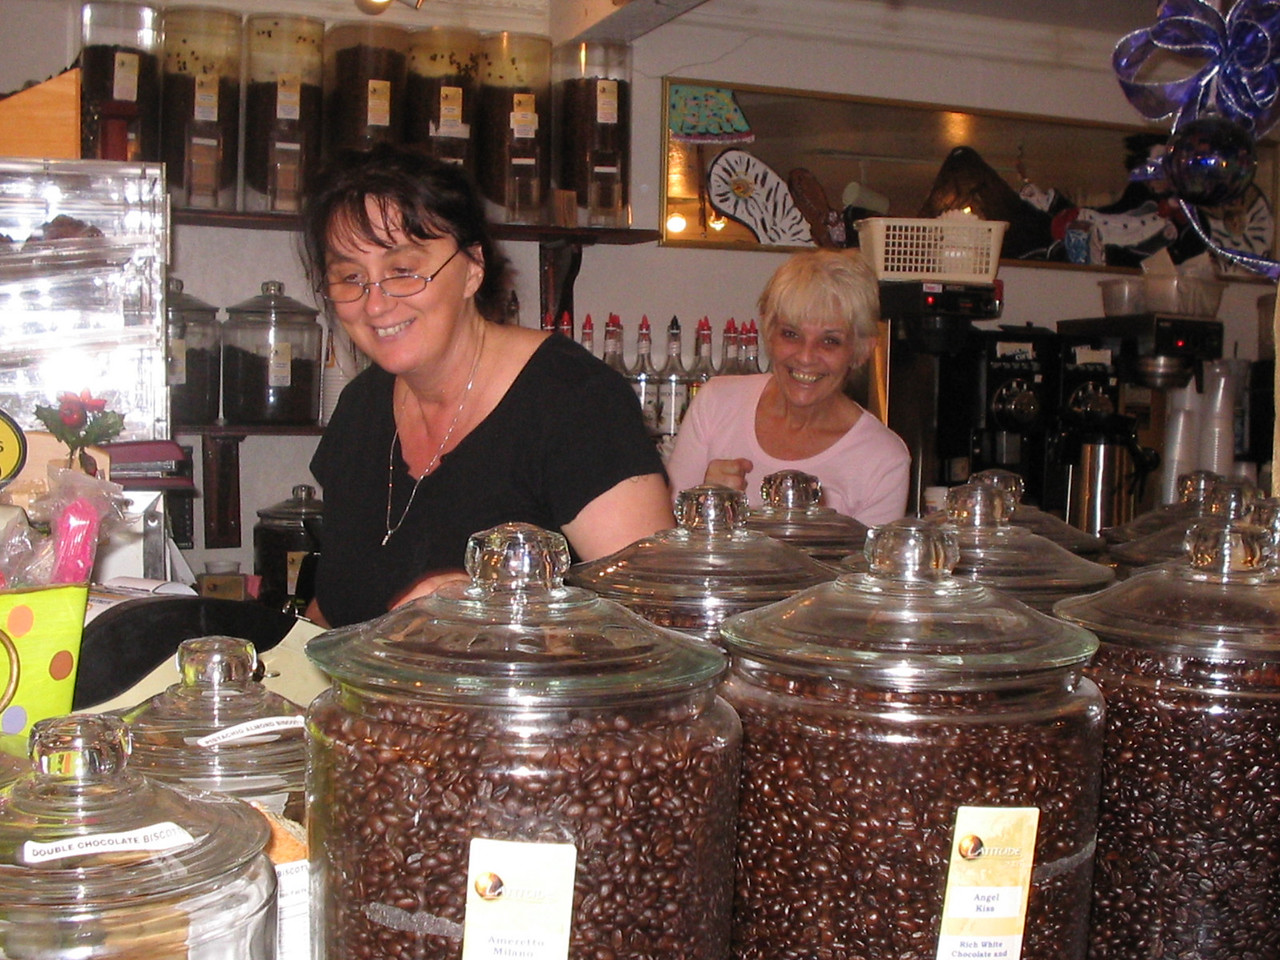 Behind the counter at B.D. Beans Cafe<br /> PHOTO CREDIT: Florida Trail Association / Judy Trotta